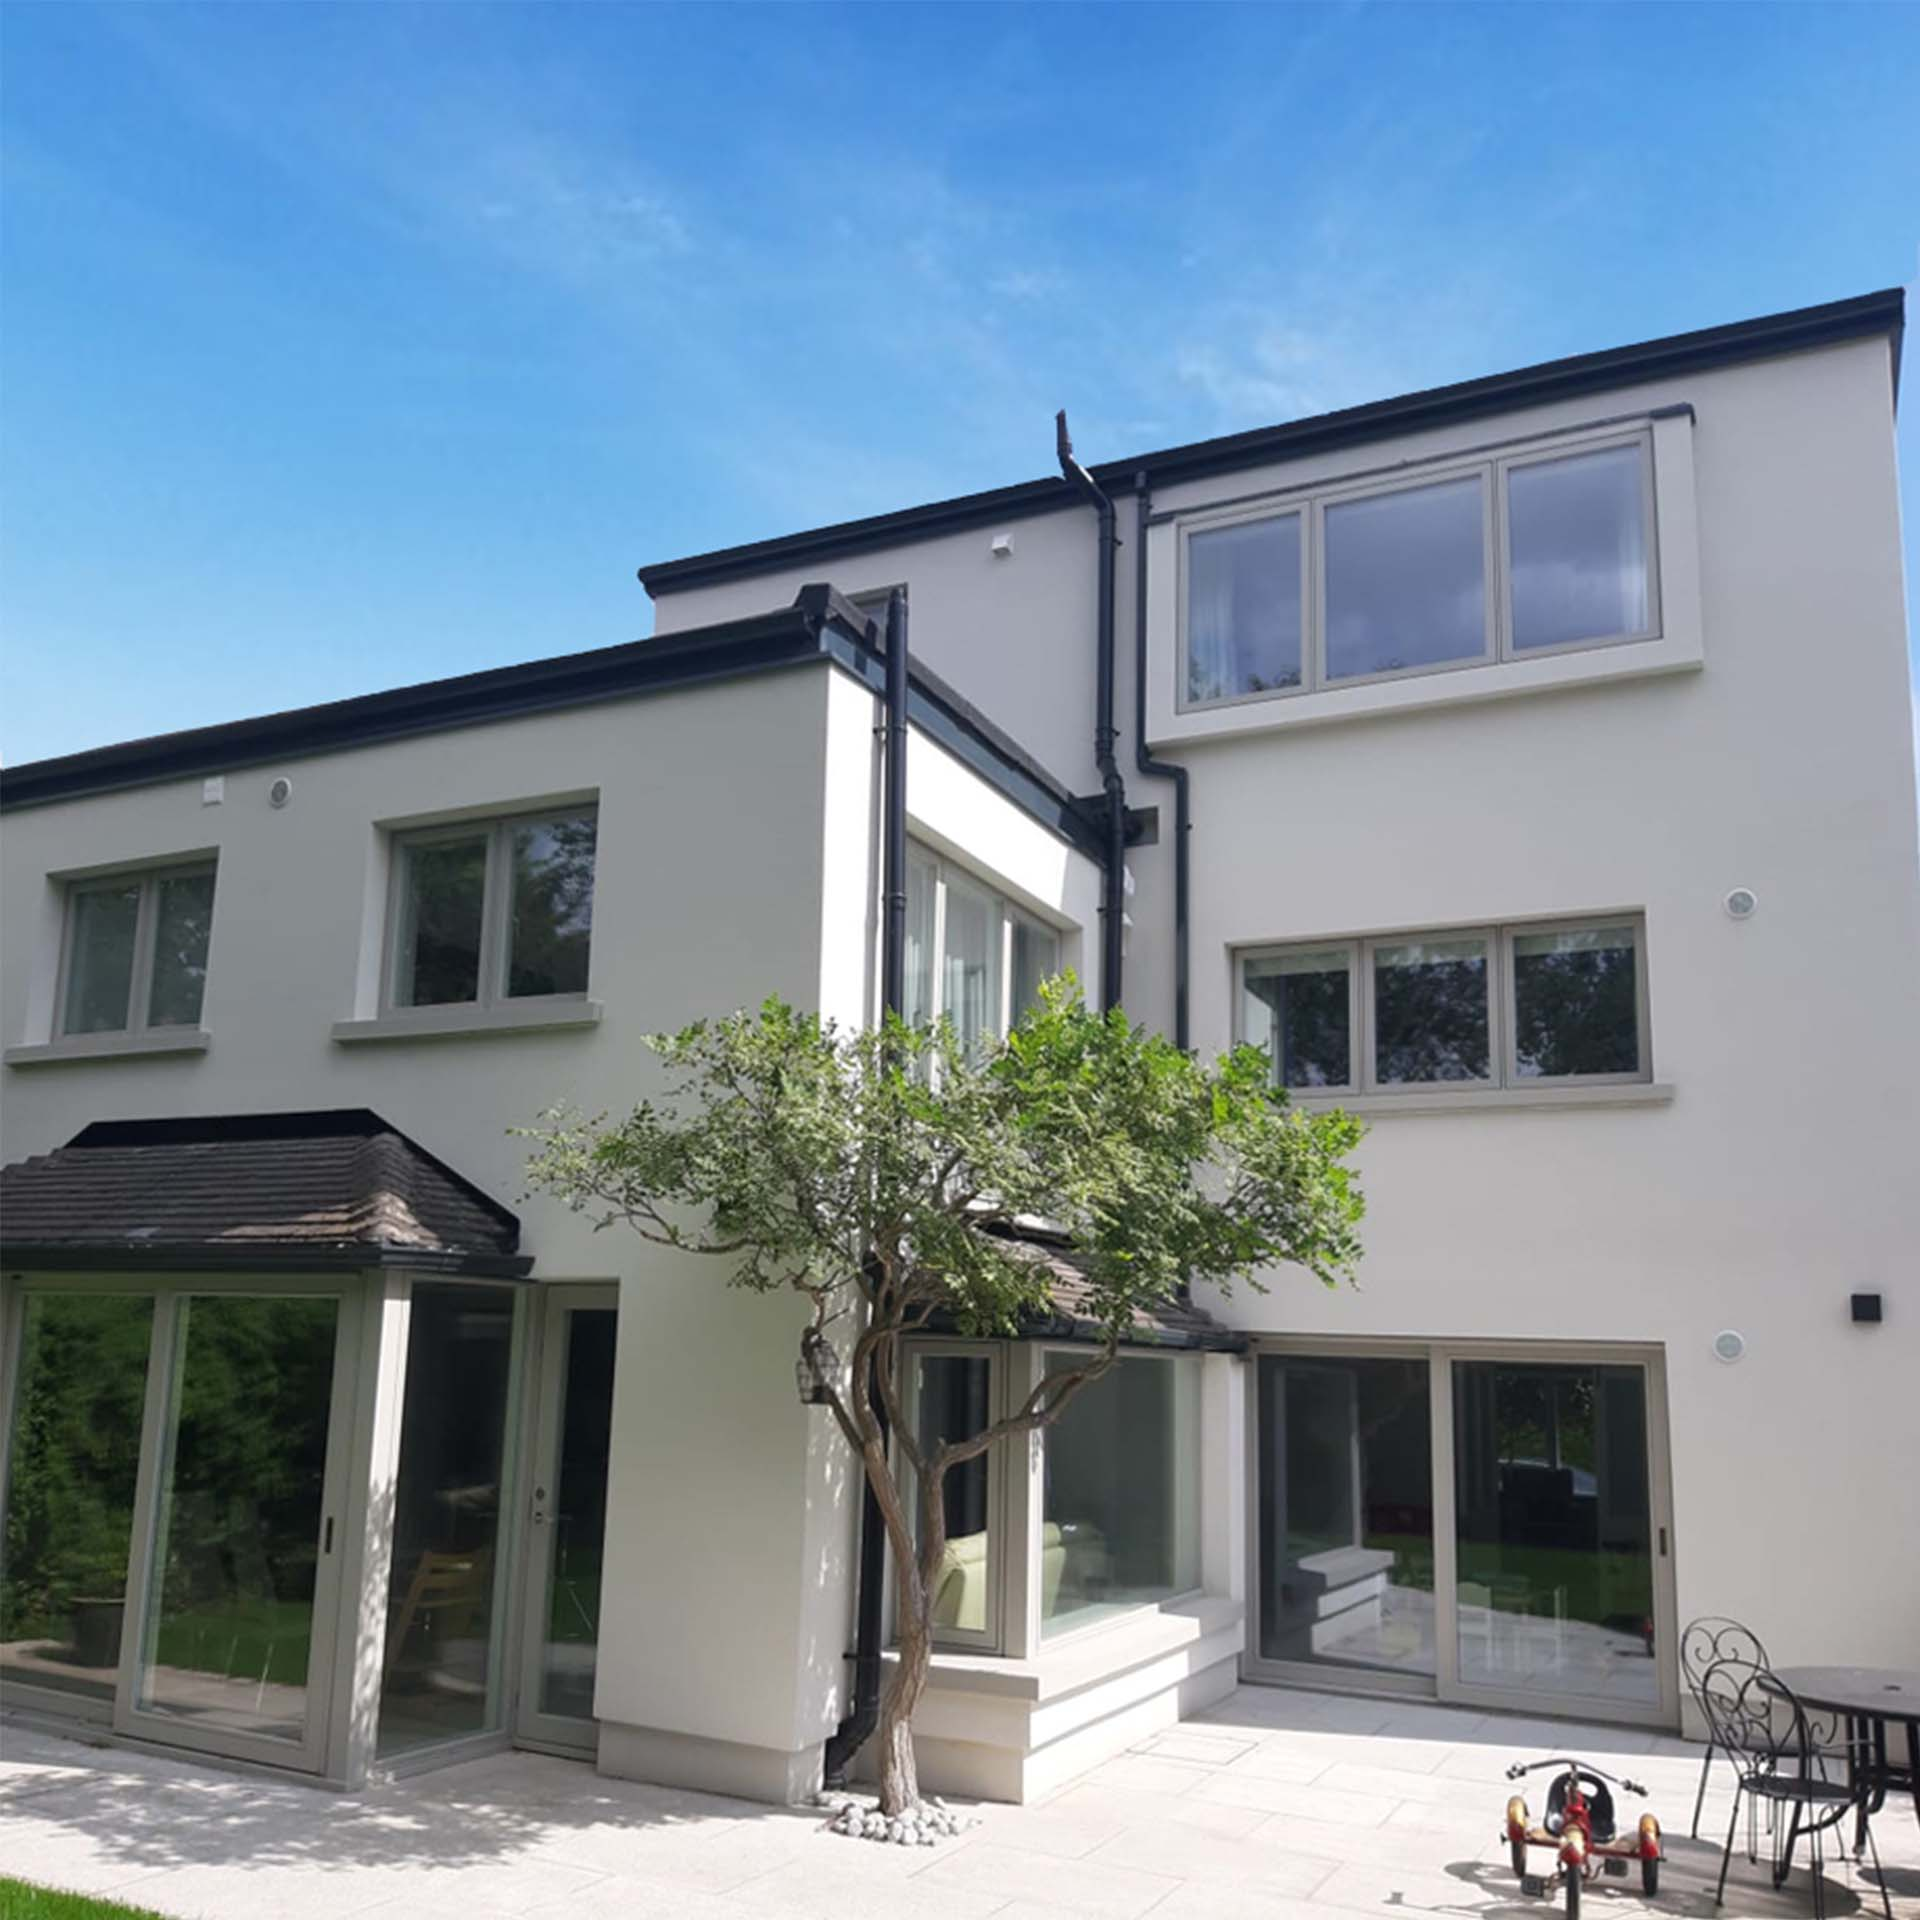 A beautiful home with external wall insulation.